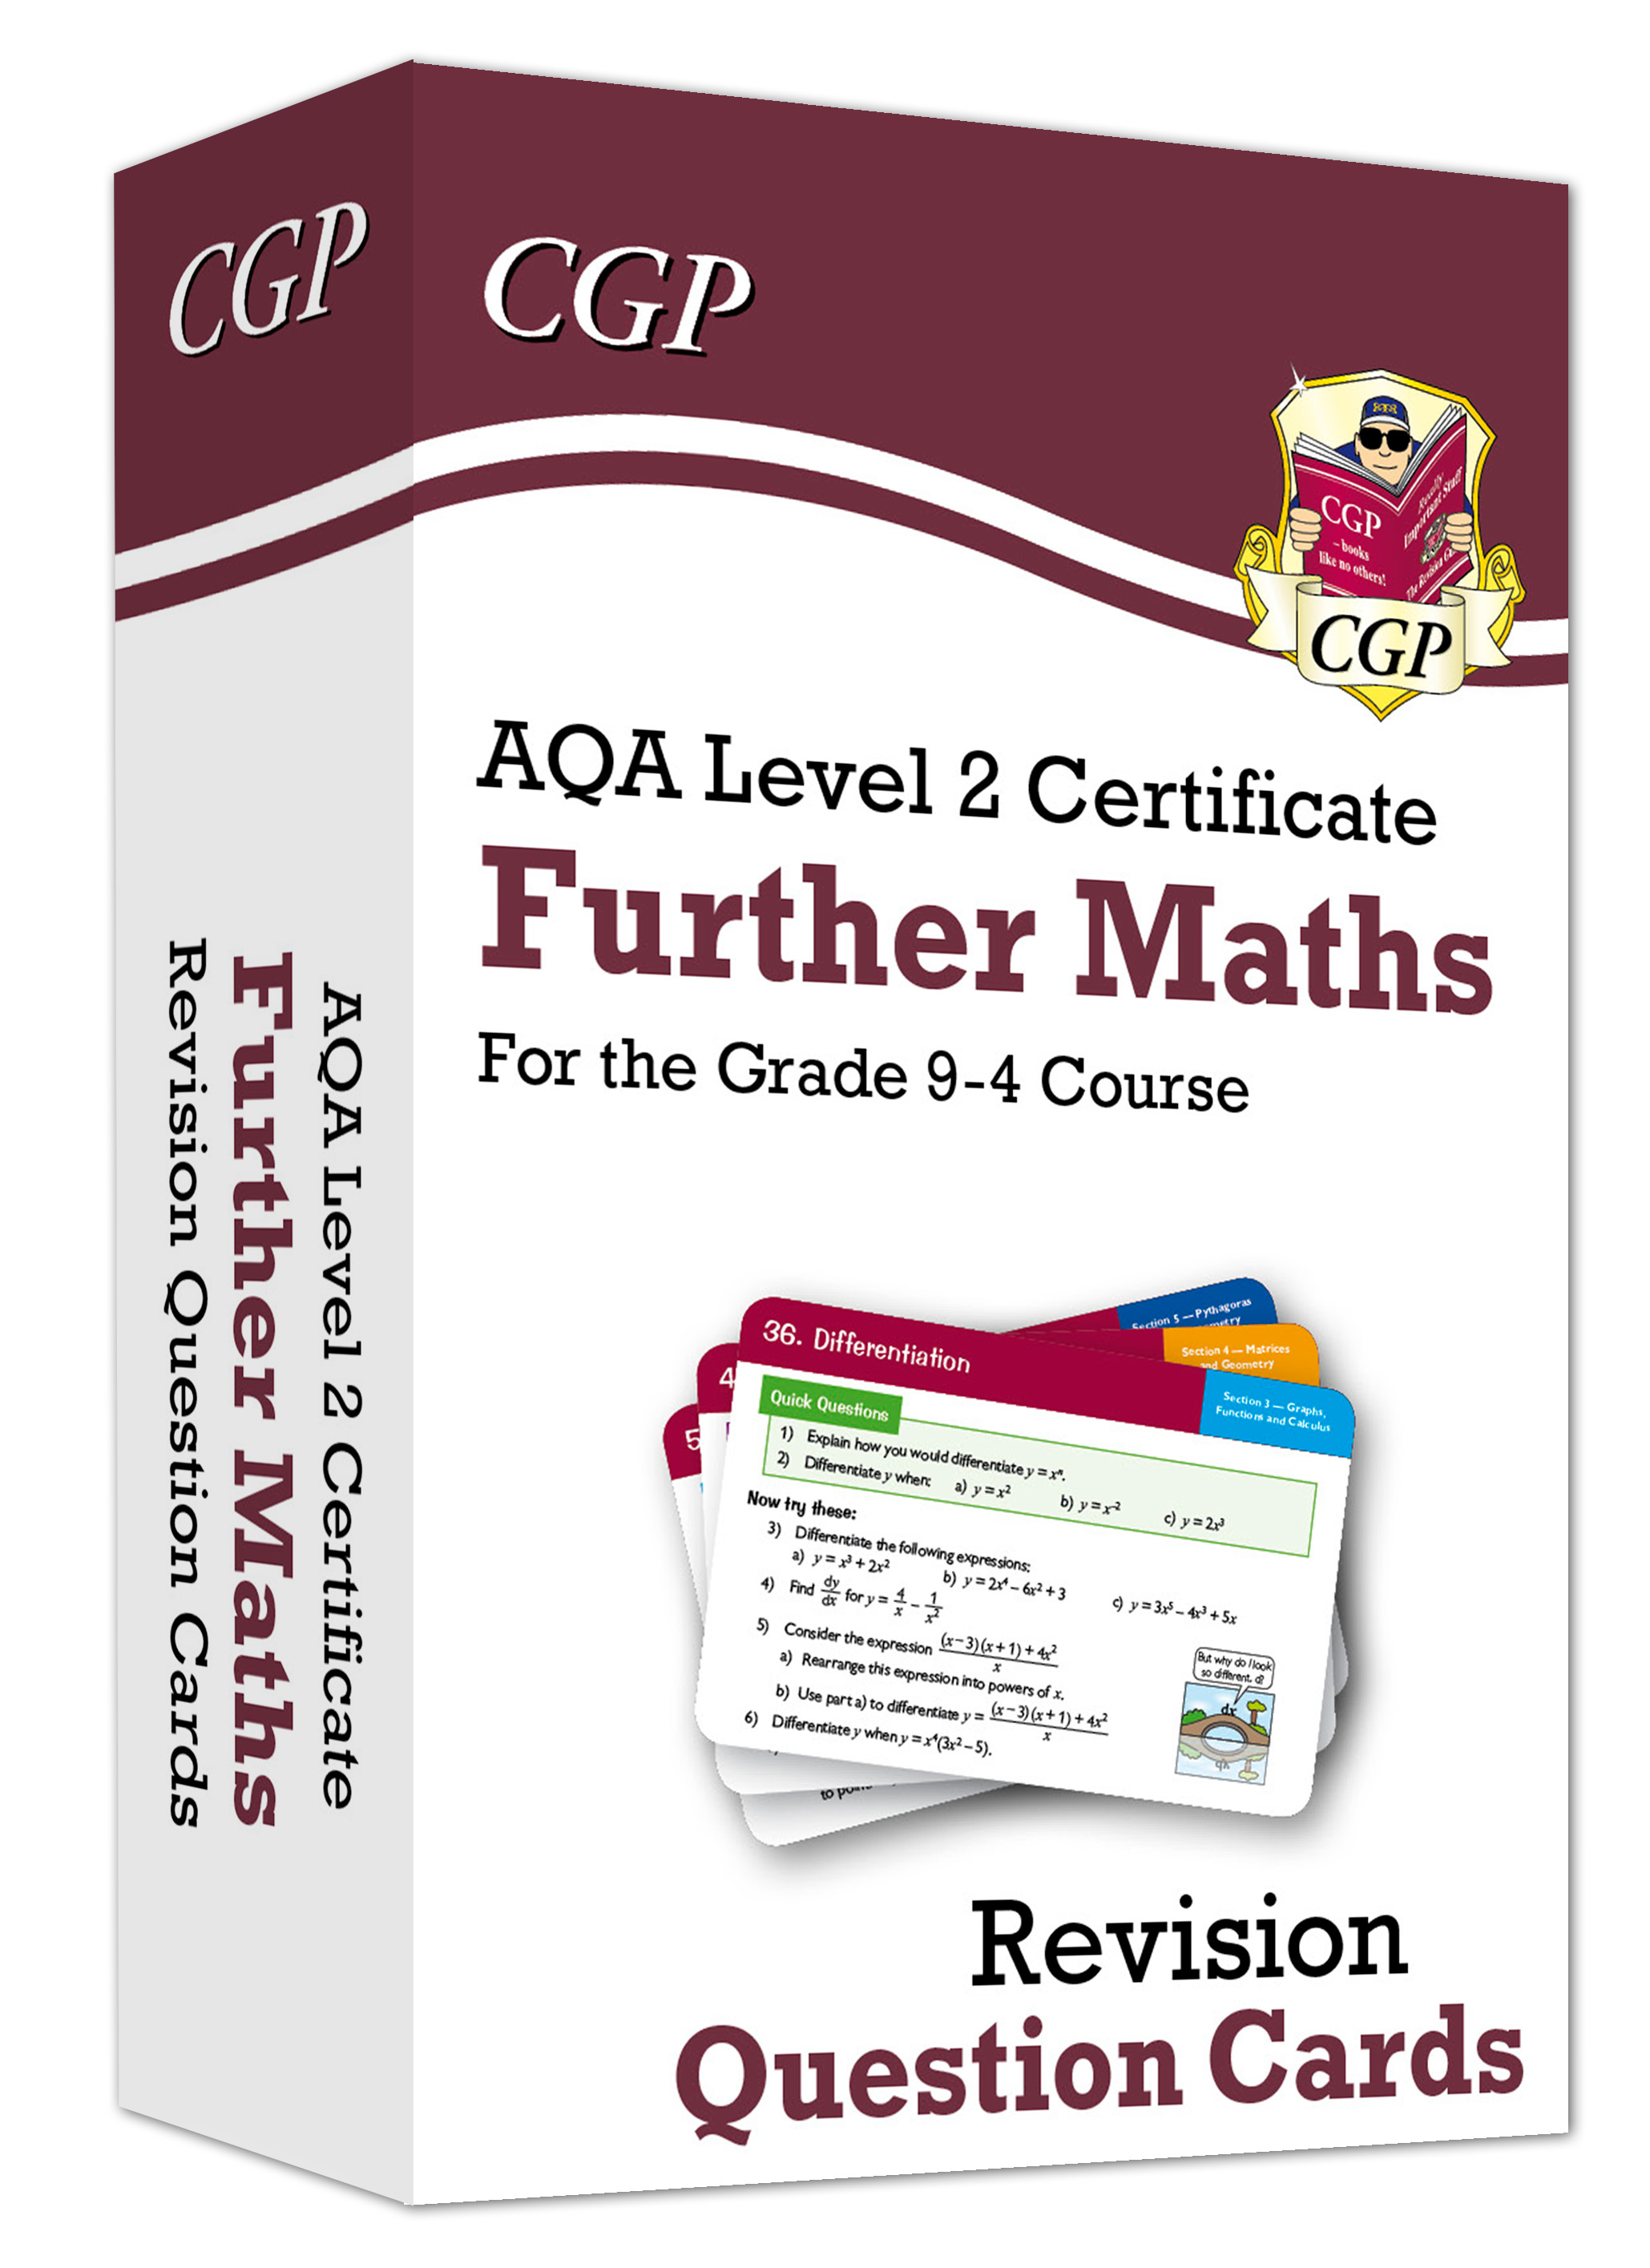 MAFI41 - New AQA Level 2 Certificate: Further Maths - Revision Question Cards